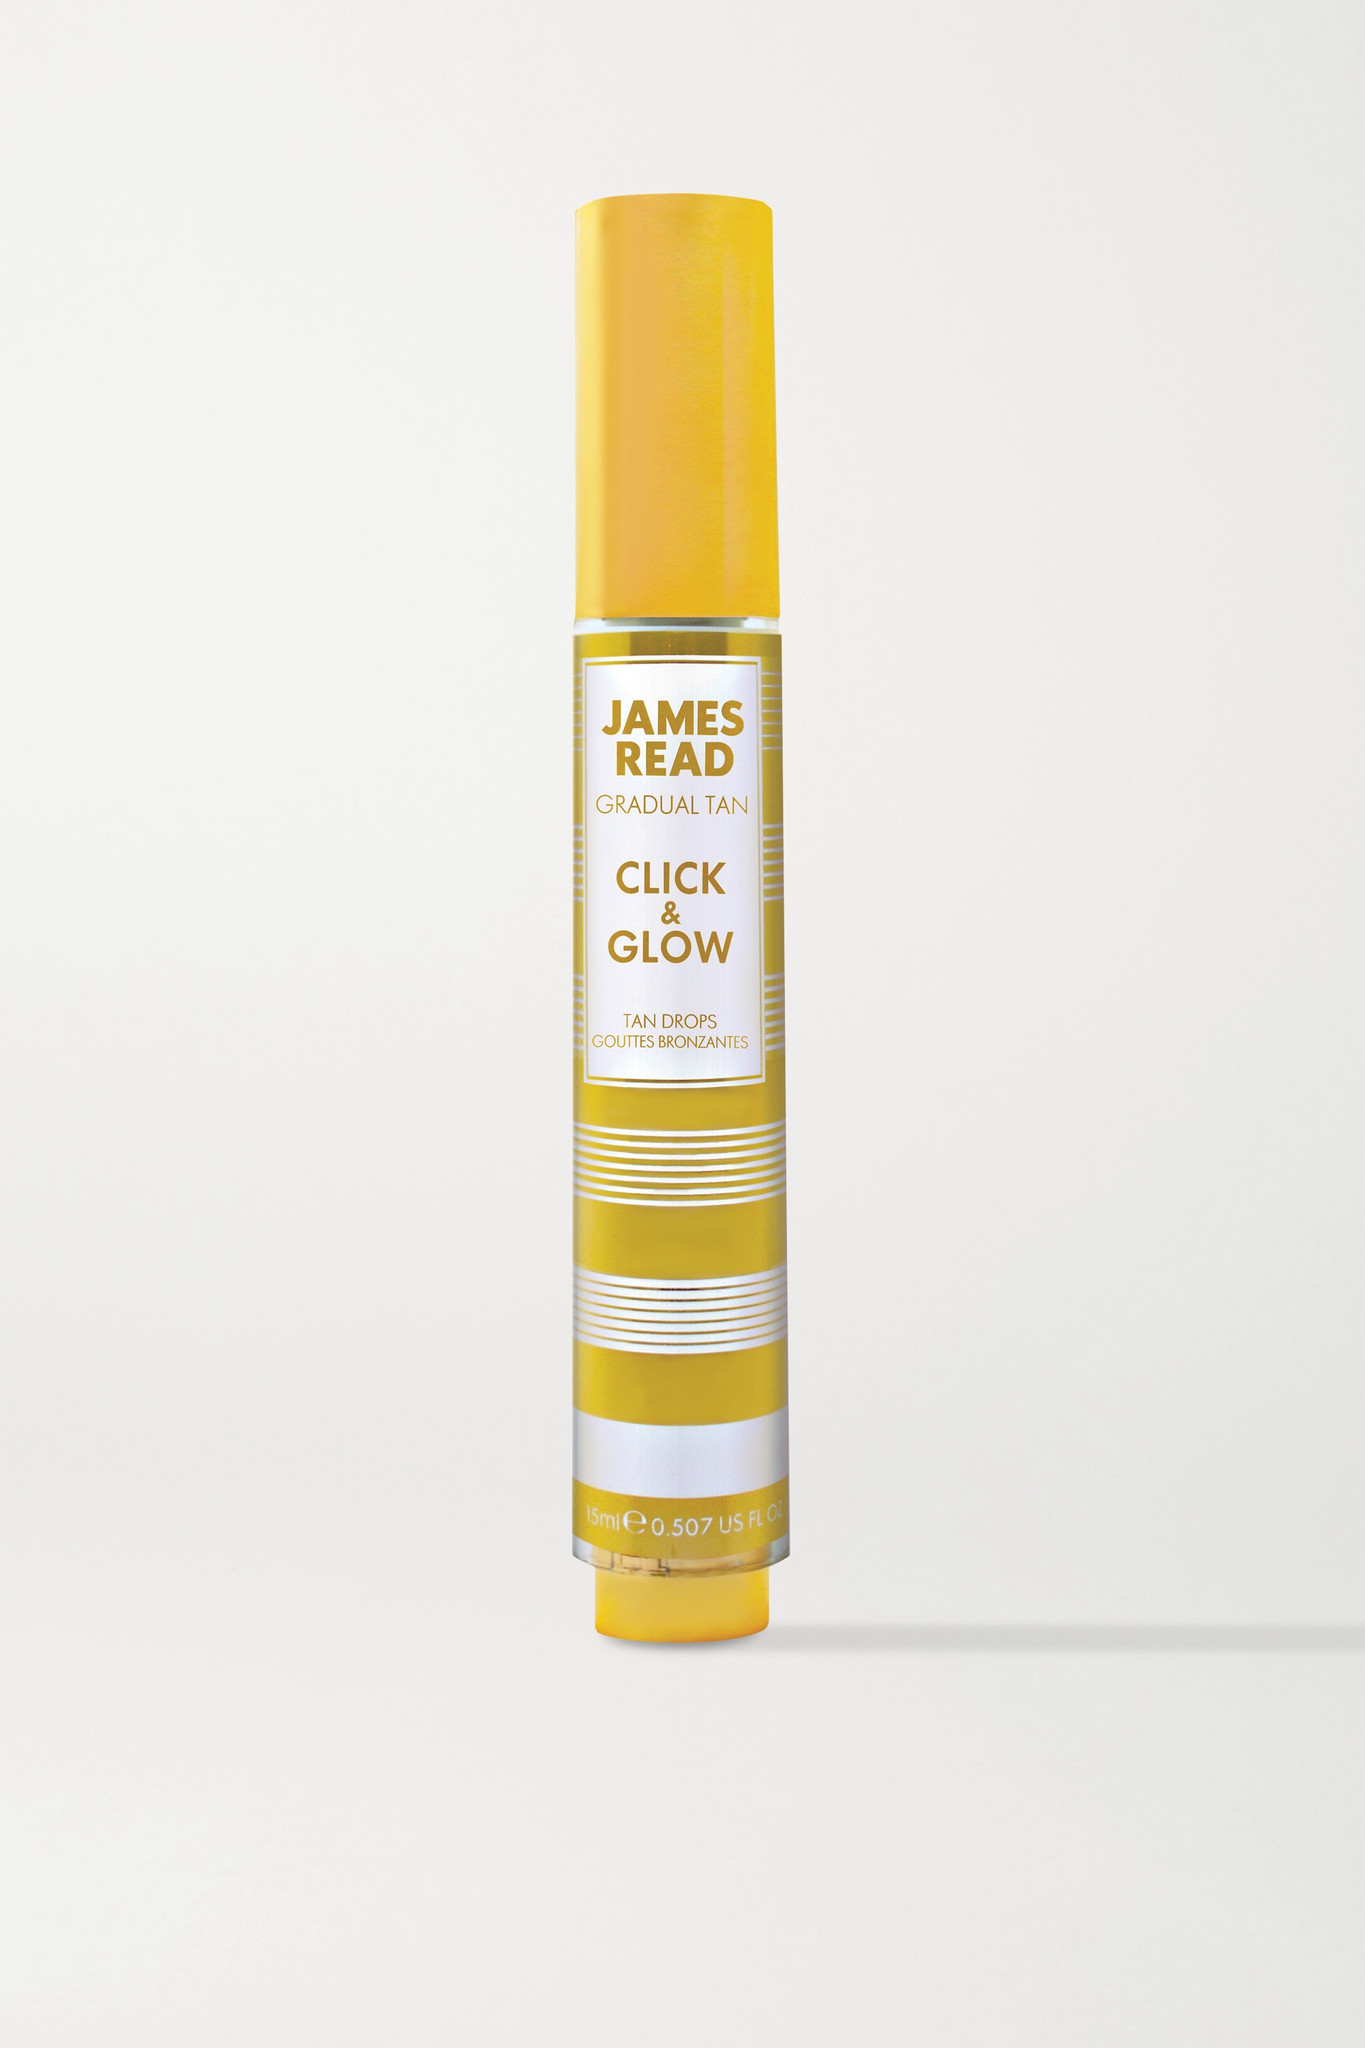 JAMES READ - Click & Glow Tan Drops, 15ml - one size